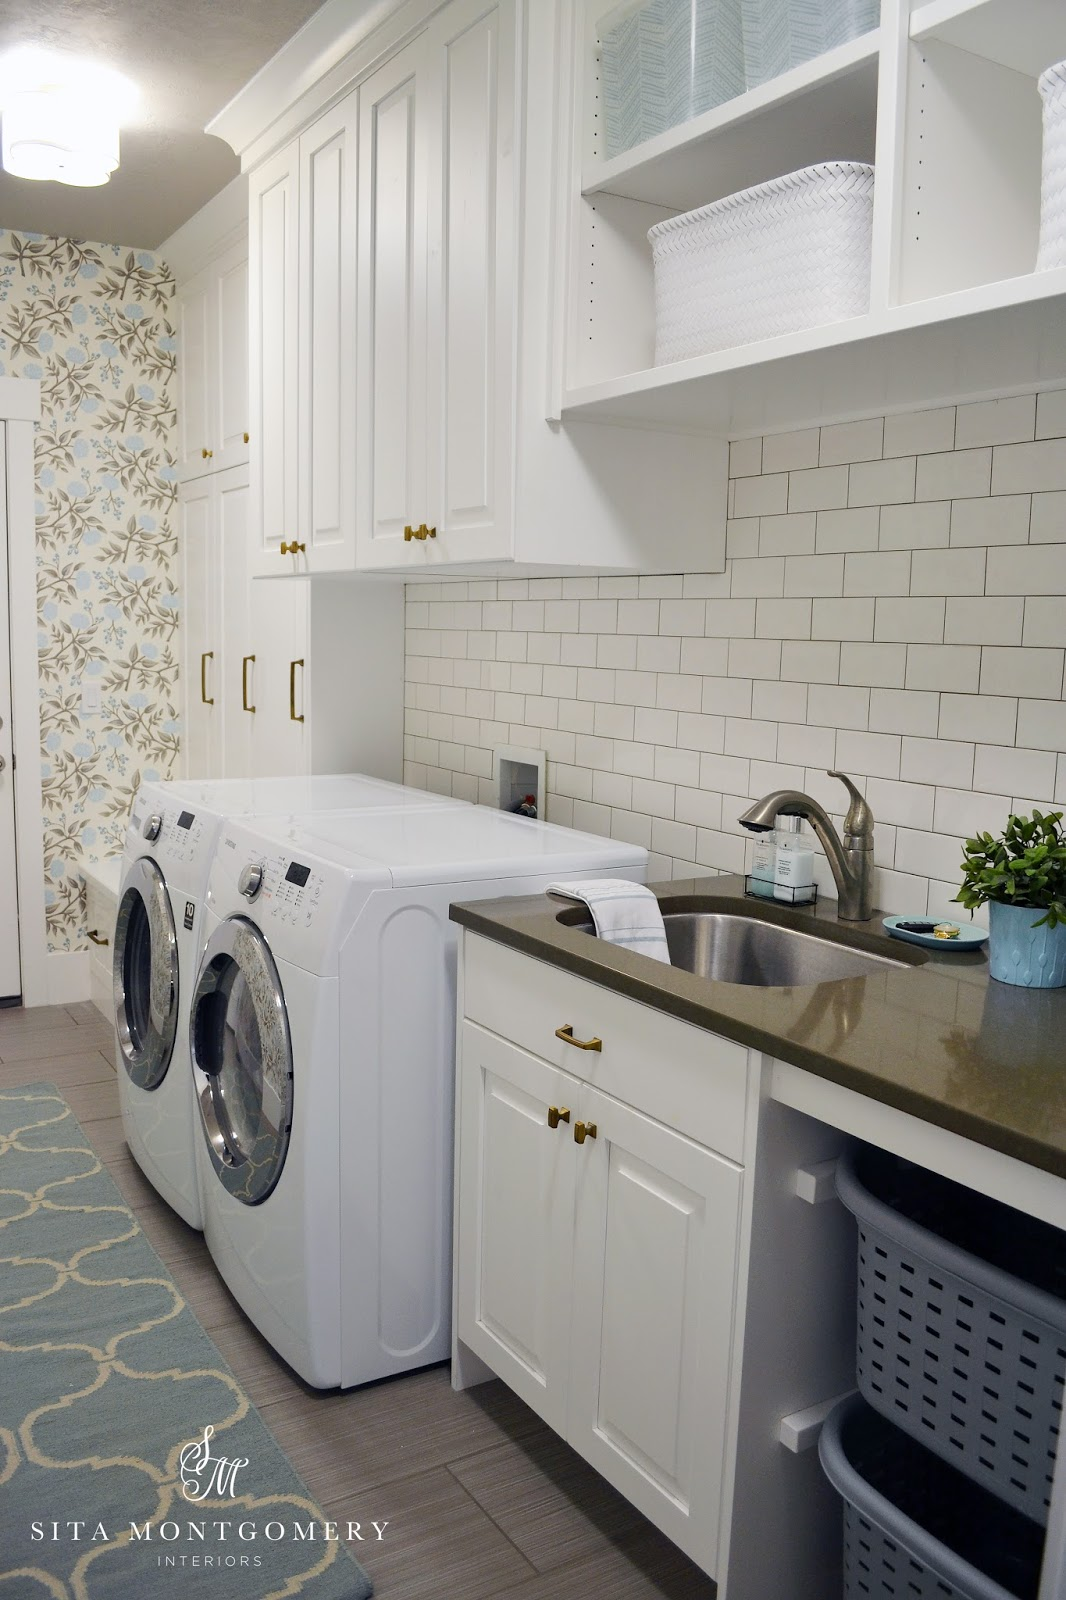 Sita Montgomery Interiors My Home Laundry Room Makeover